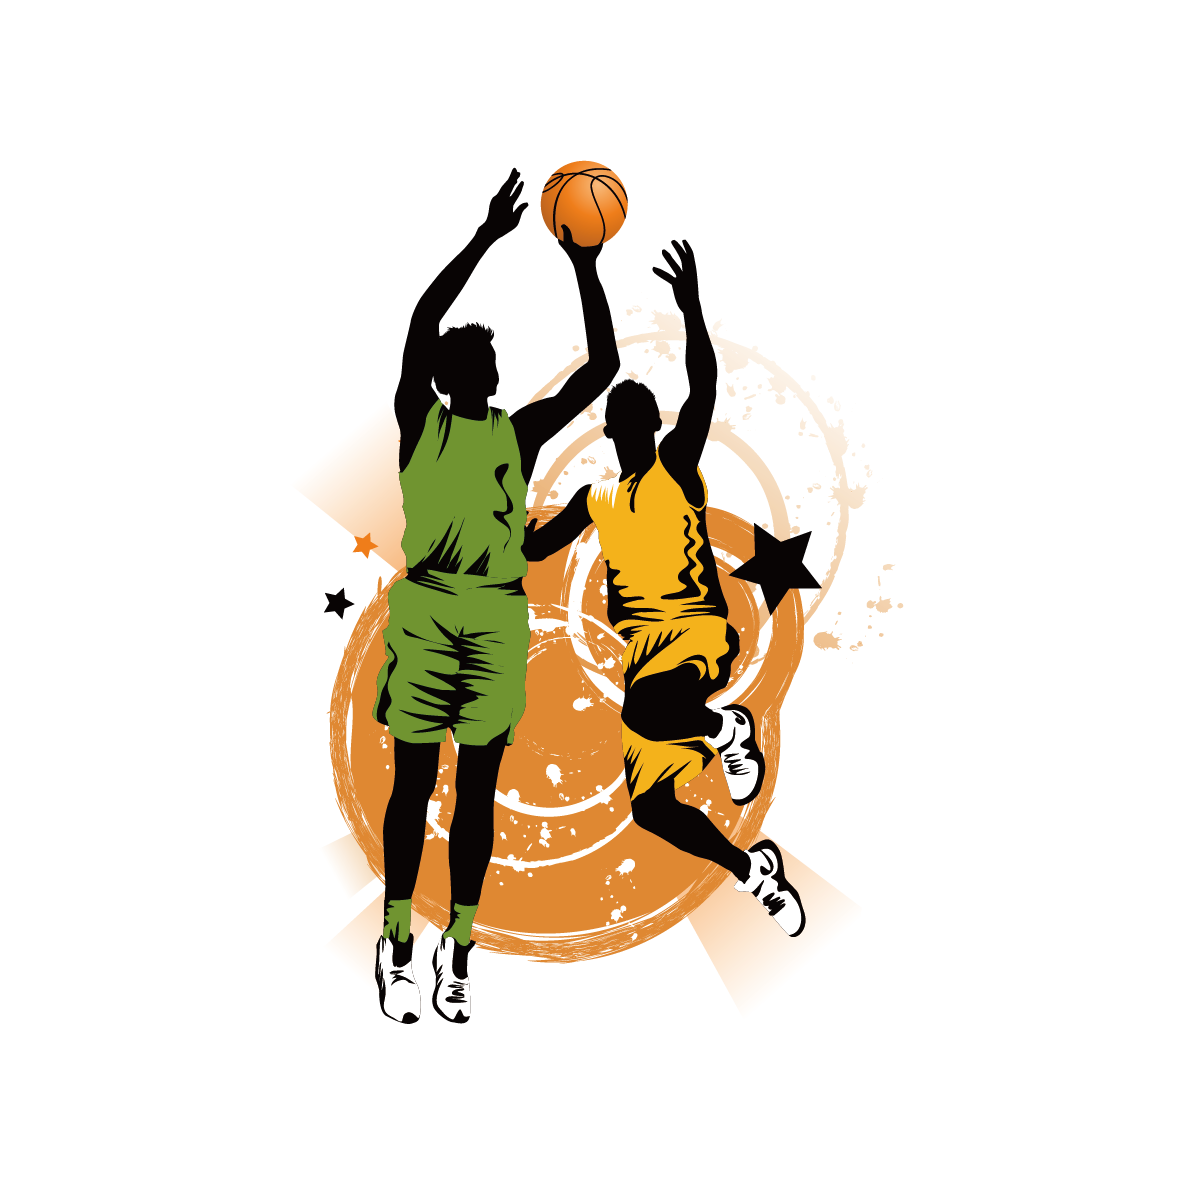 Clipart basketball player picture transparent stock Slam Dunk Clipart at GetDrawings.com | Free for personal use Slam ... picture transparent stock